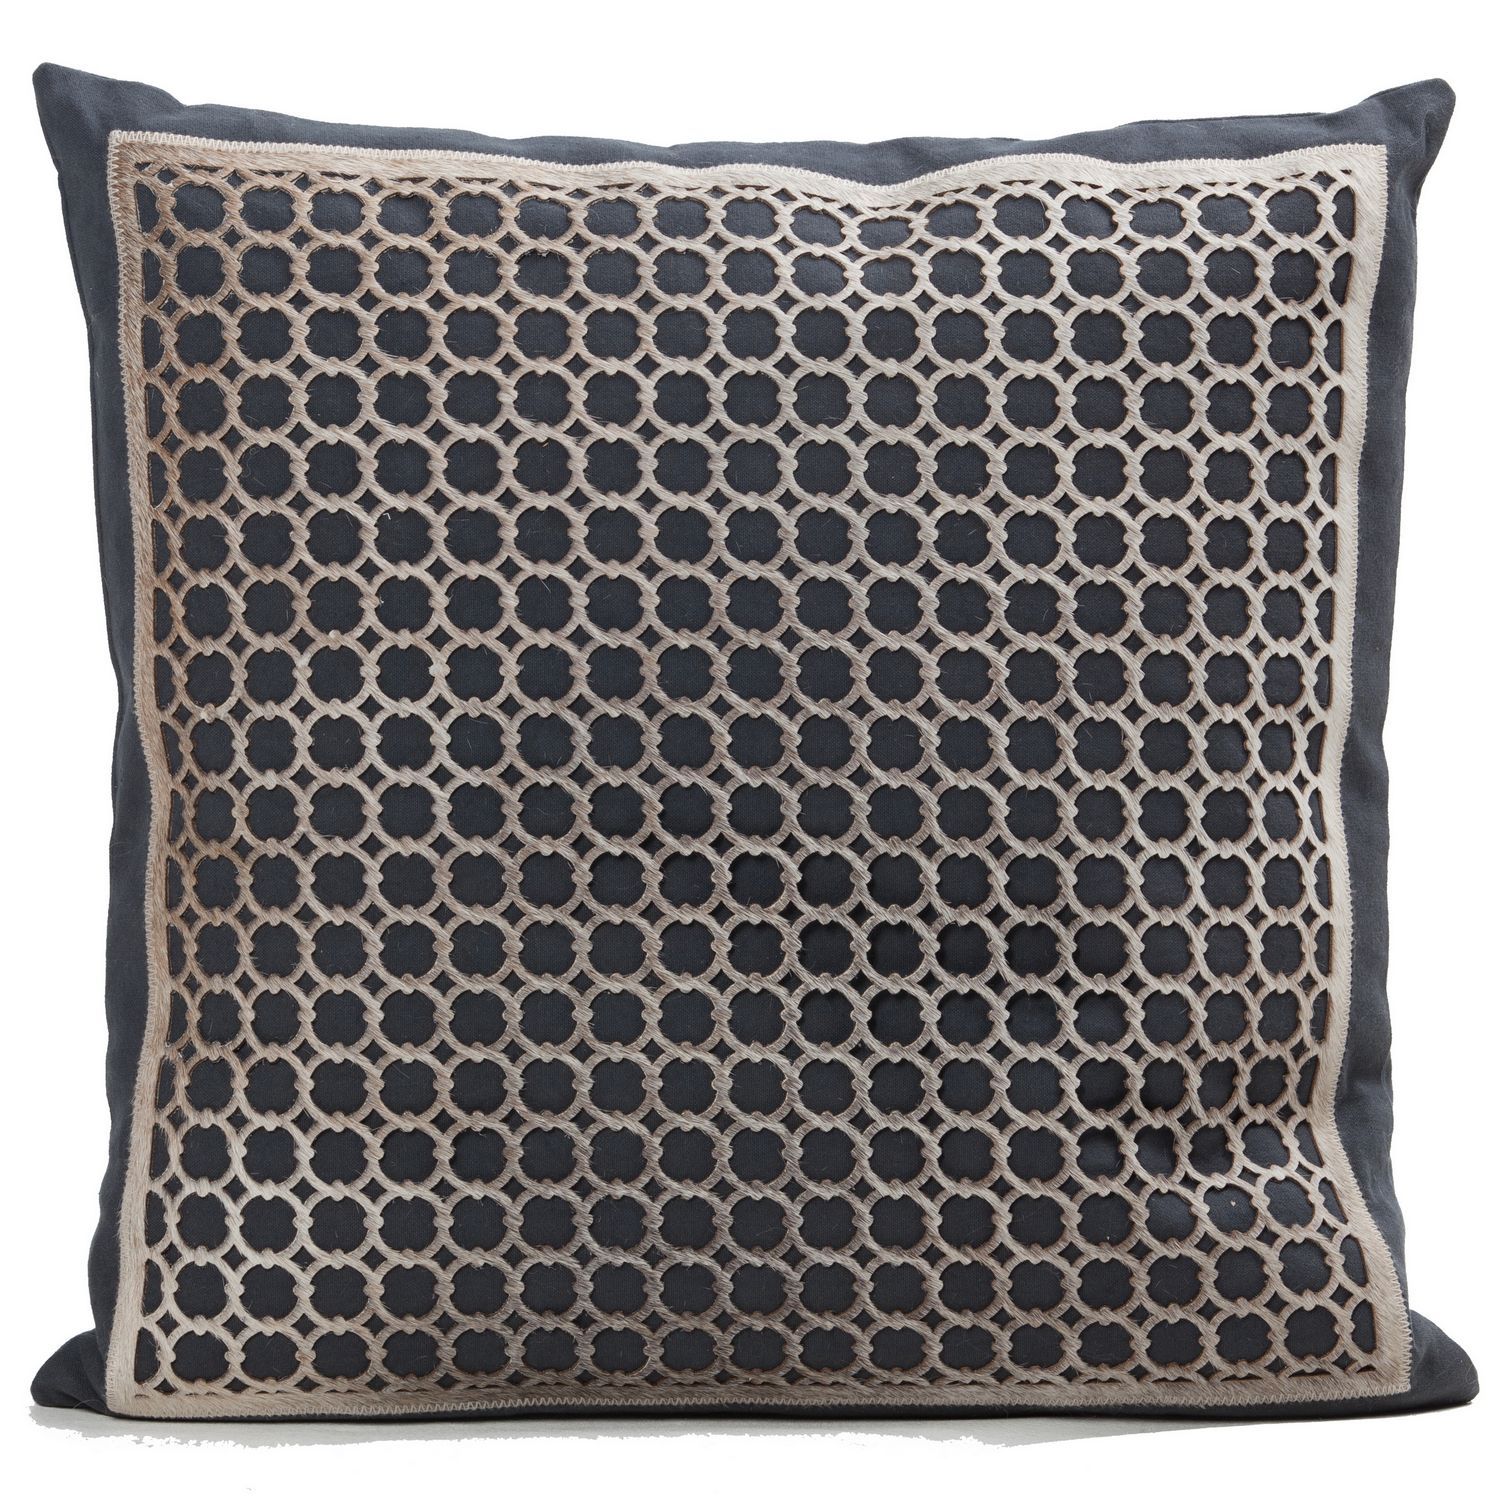 kashmir pillow square product pillows wool modern medallion floral cushion french sofa couch red cover throw contemporary handembroidered decorative